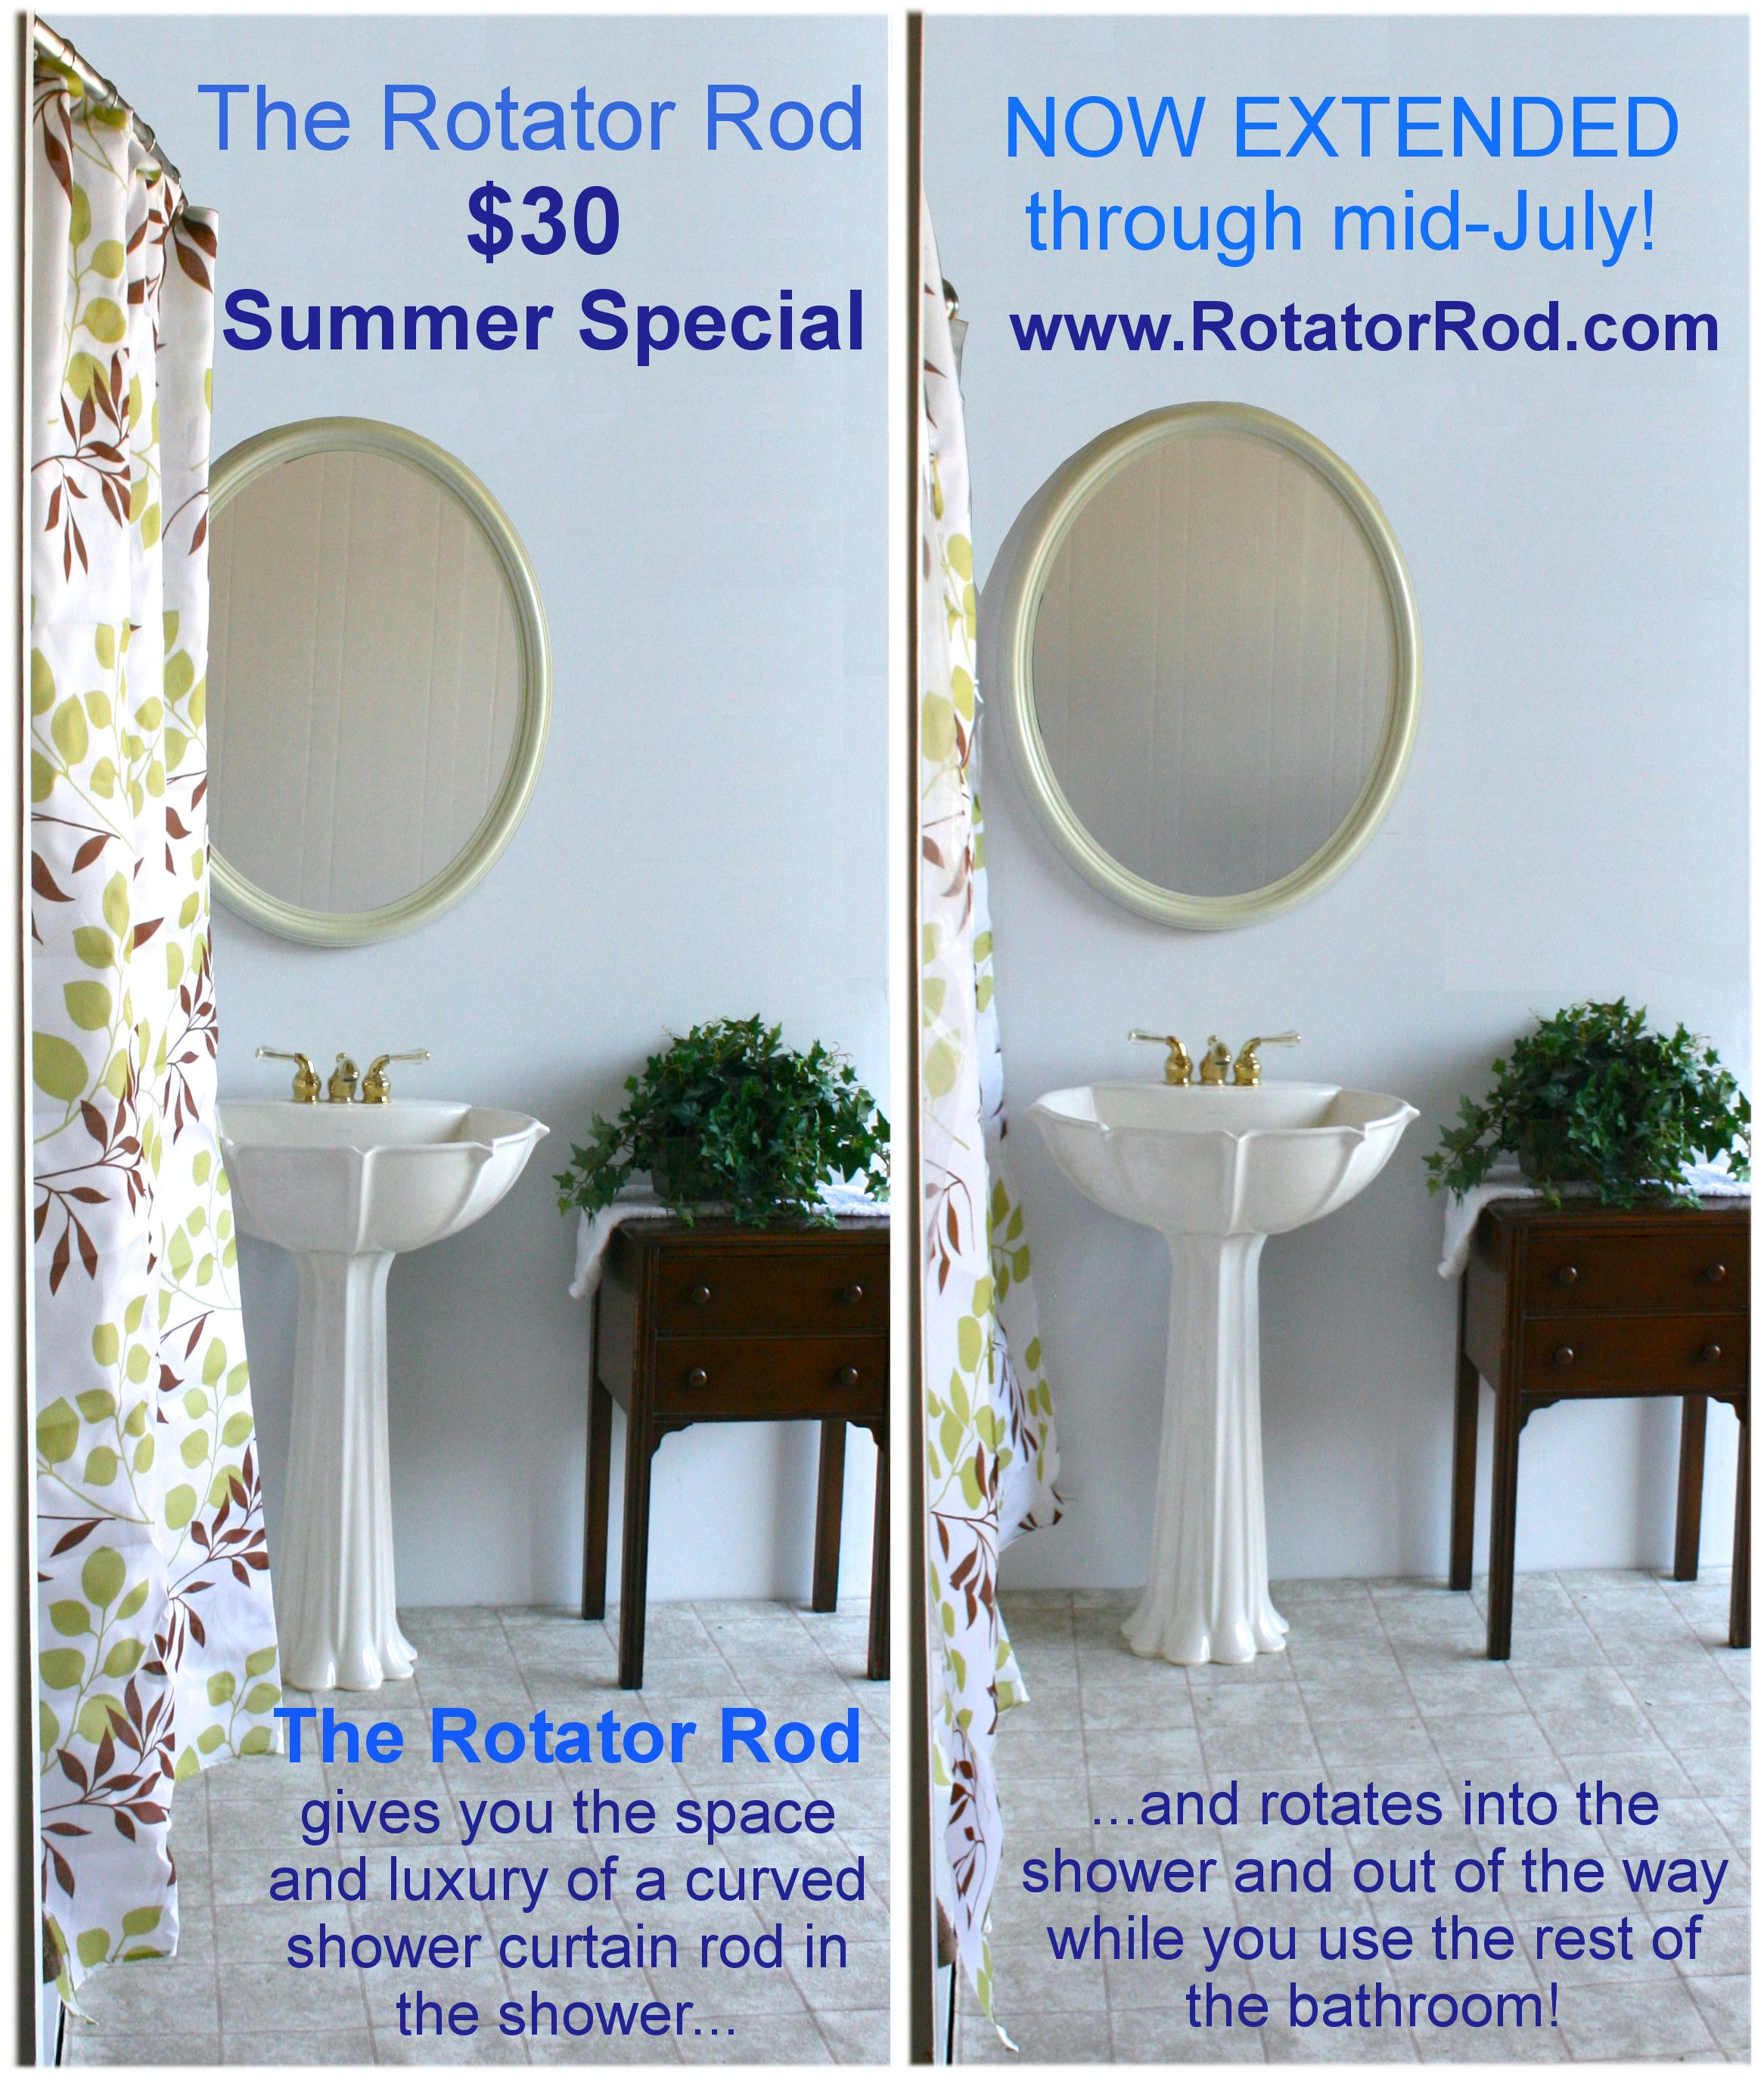 Pinner Says The Rotator Rod 30 Summer Special Ends This Weekend